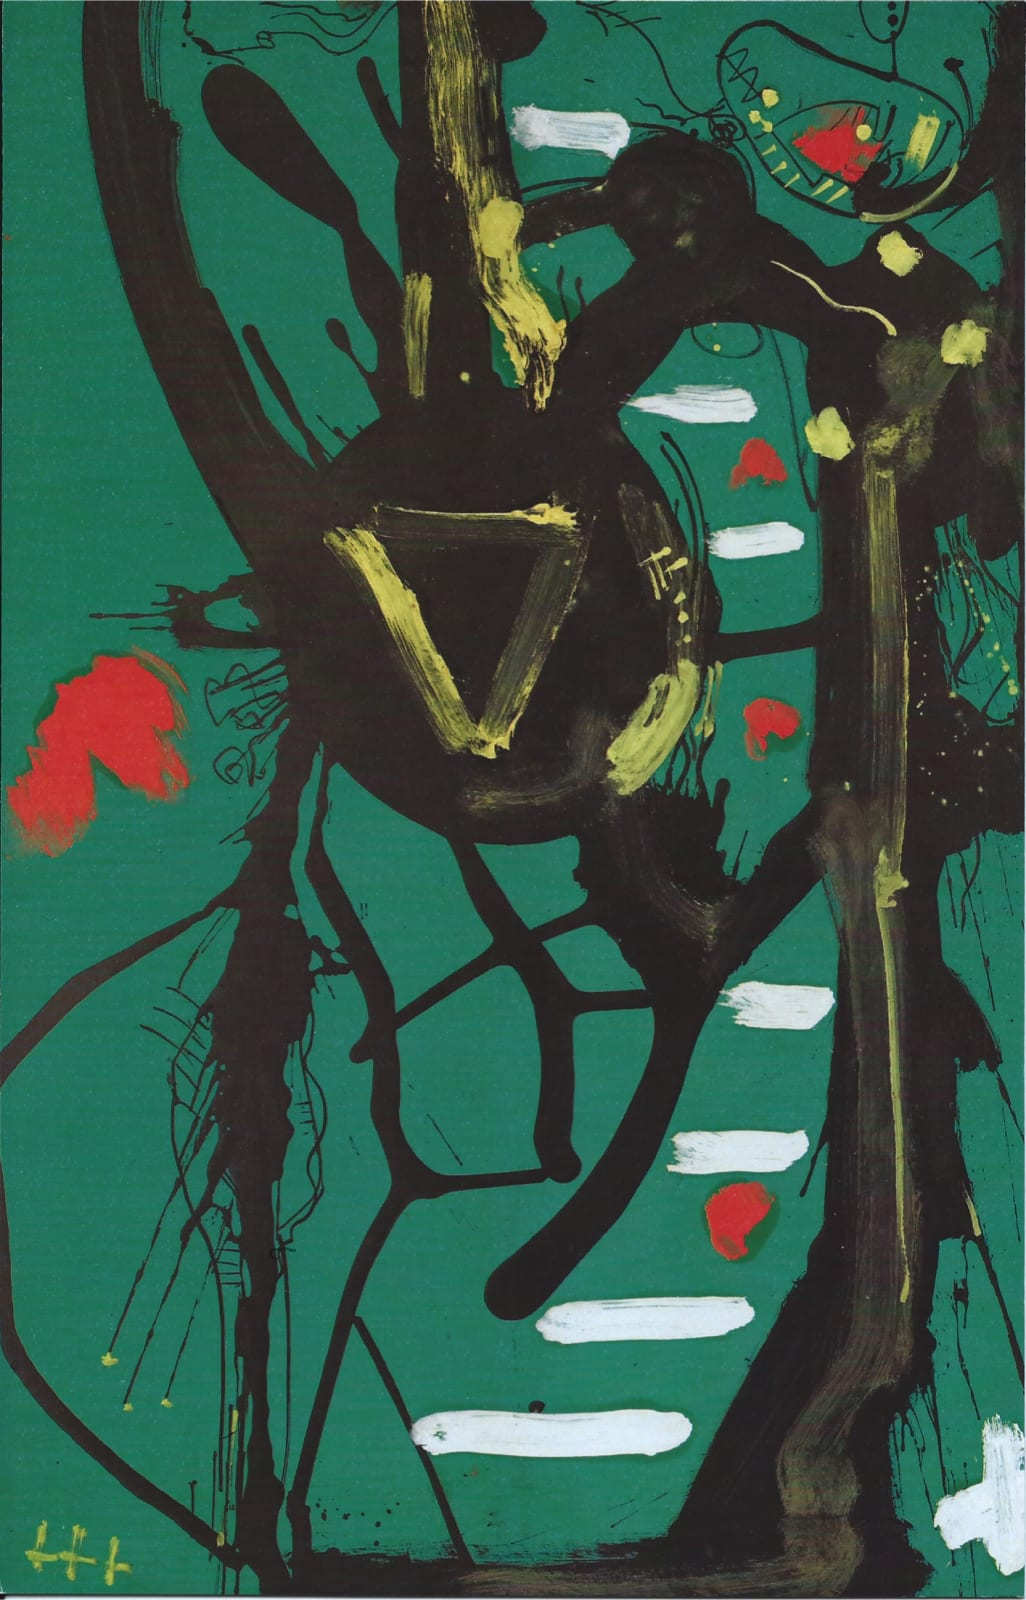 Hans HOFMANN (1880 – 1966) Black Form, 1946 Oil on board 44 x 28 ¼ inches / 111.7 x 71.7 cm Initialed lower left HH Catalogue No. 496-1946